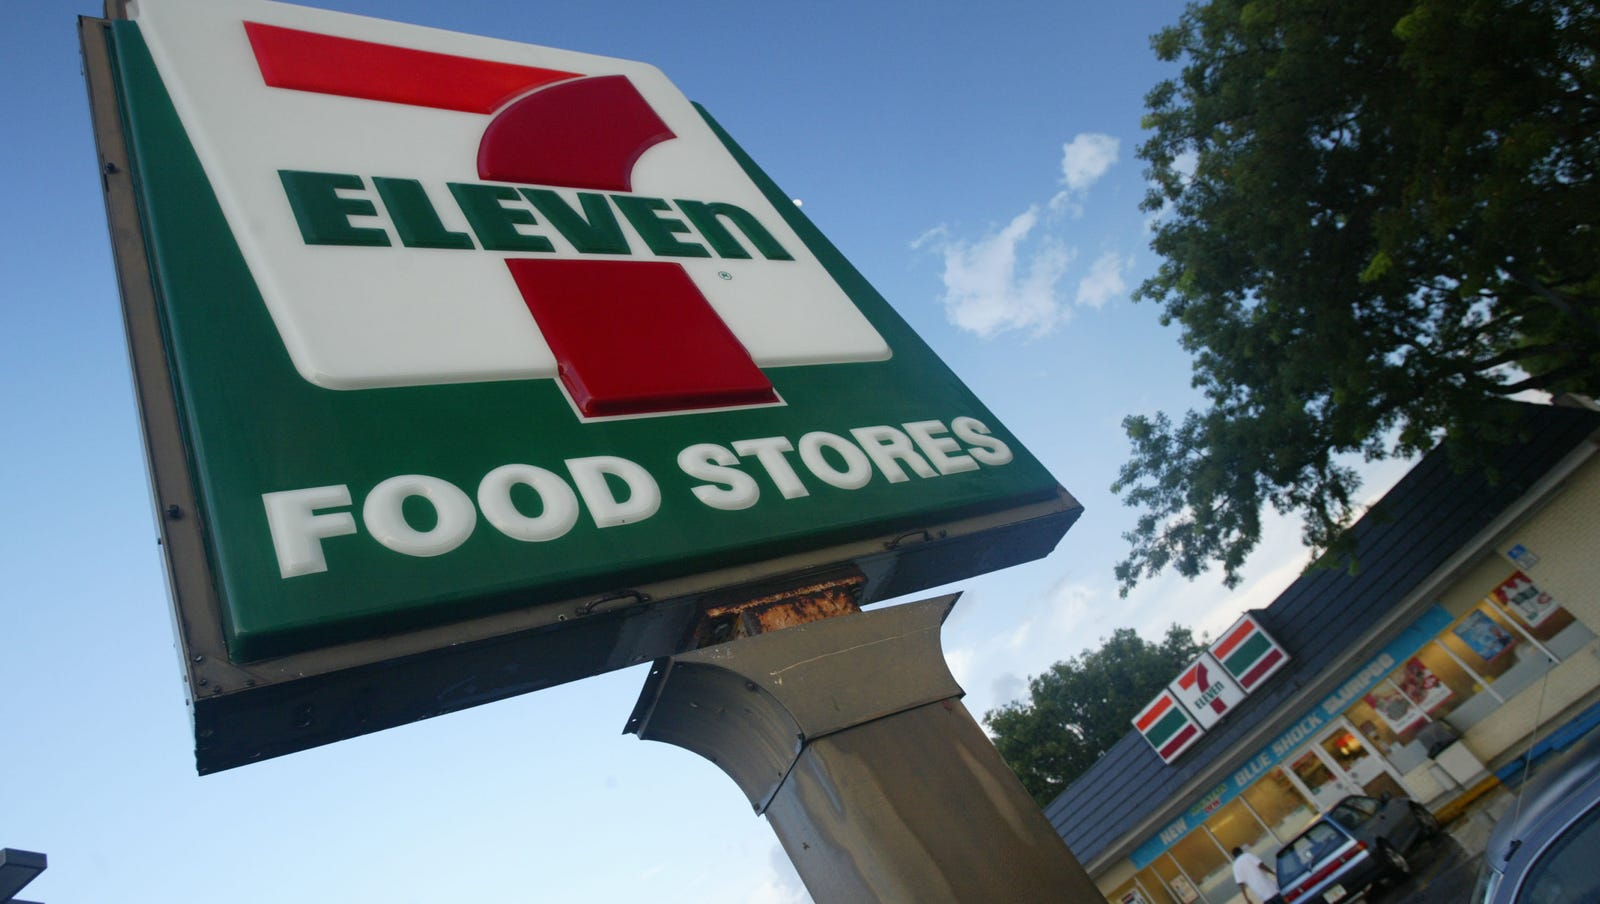 7 Eleven Parent Firm To Buy 1100 Sunoco Convenience Stores In 3 3b Deal